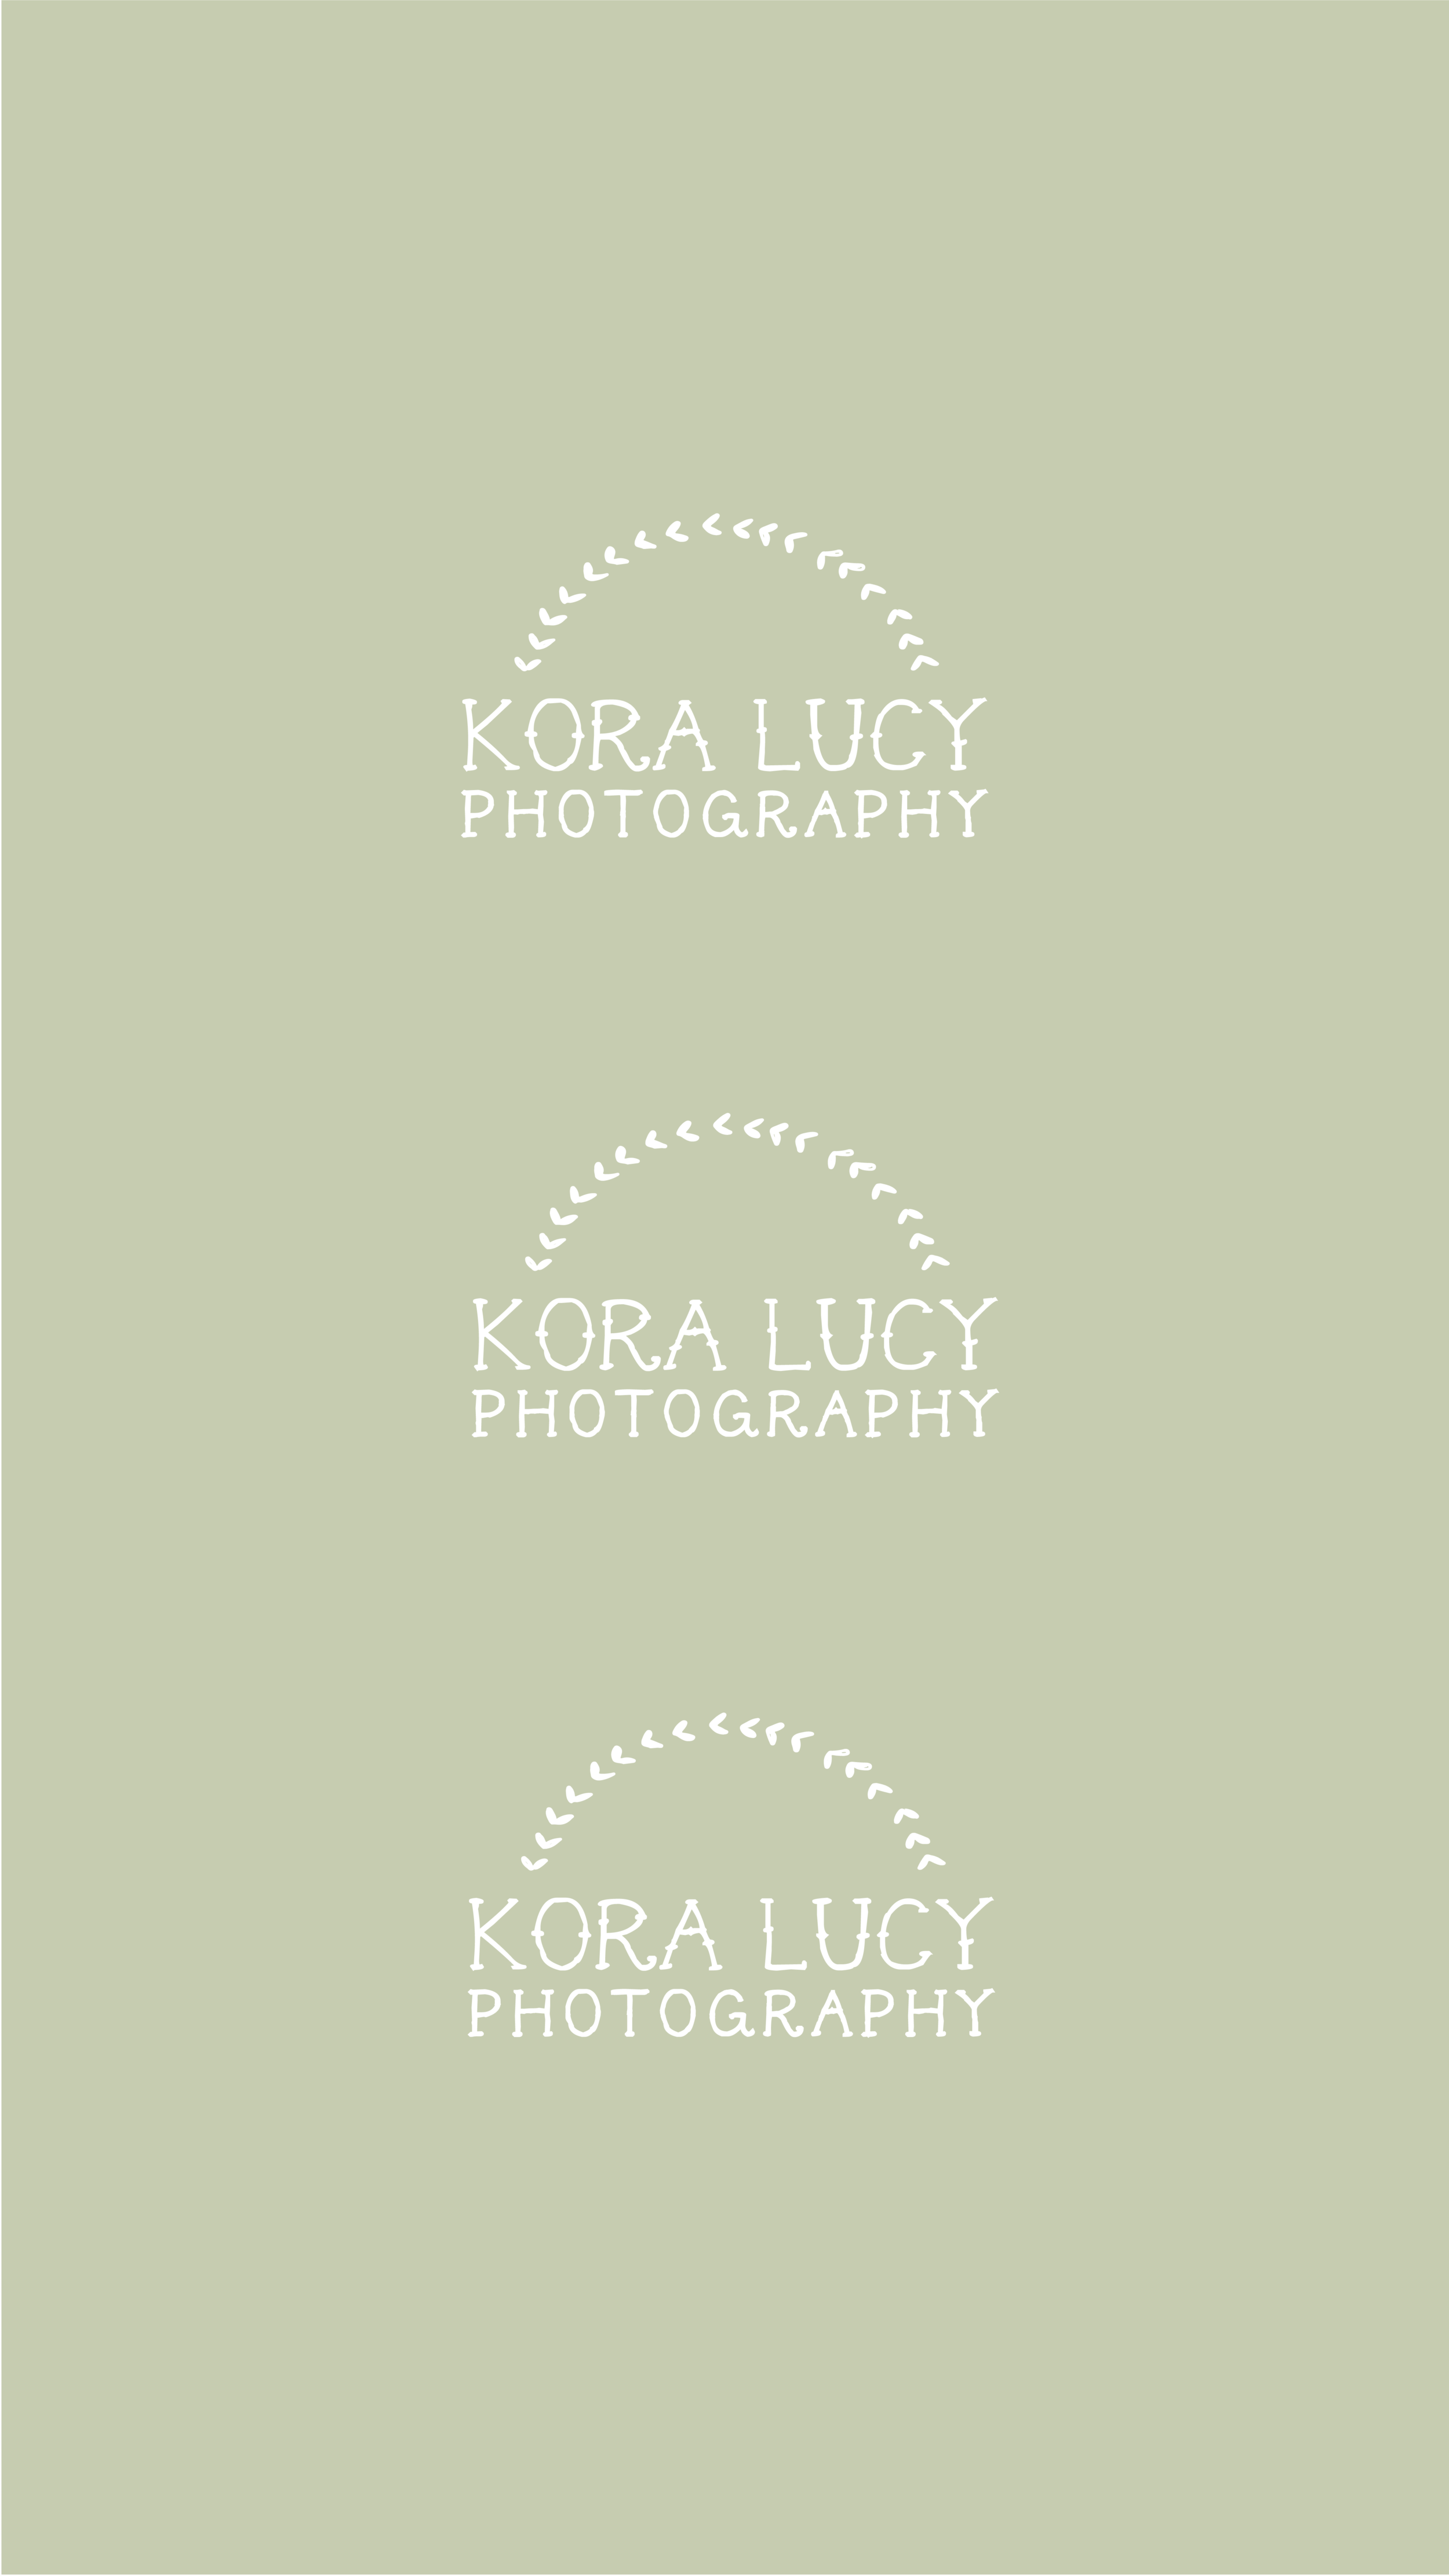 kora-lucy-photography-blank-paige-design-1